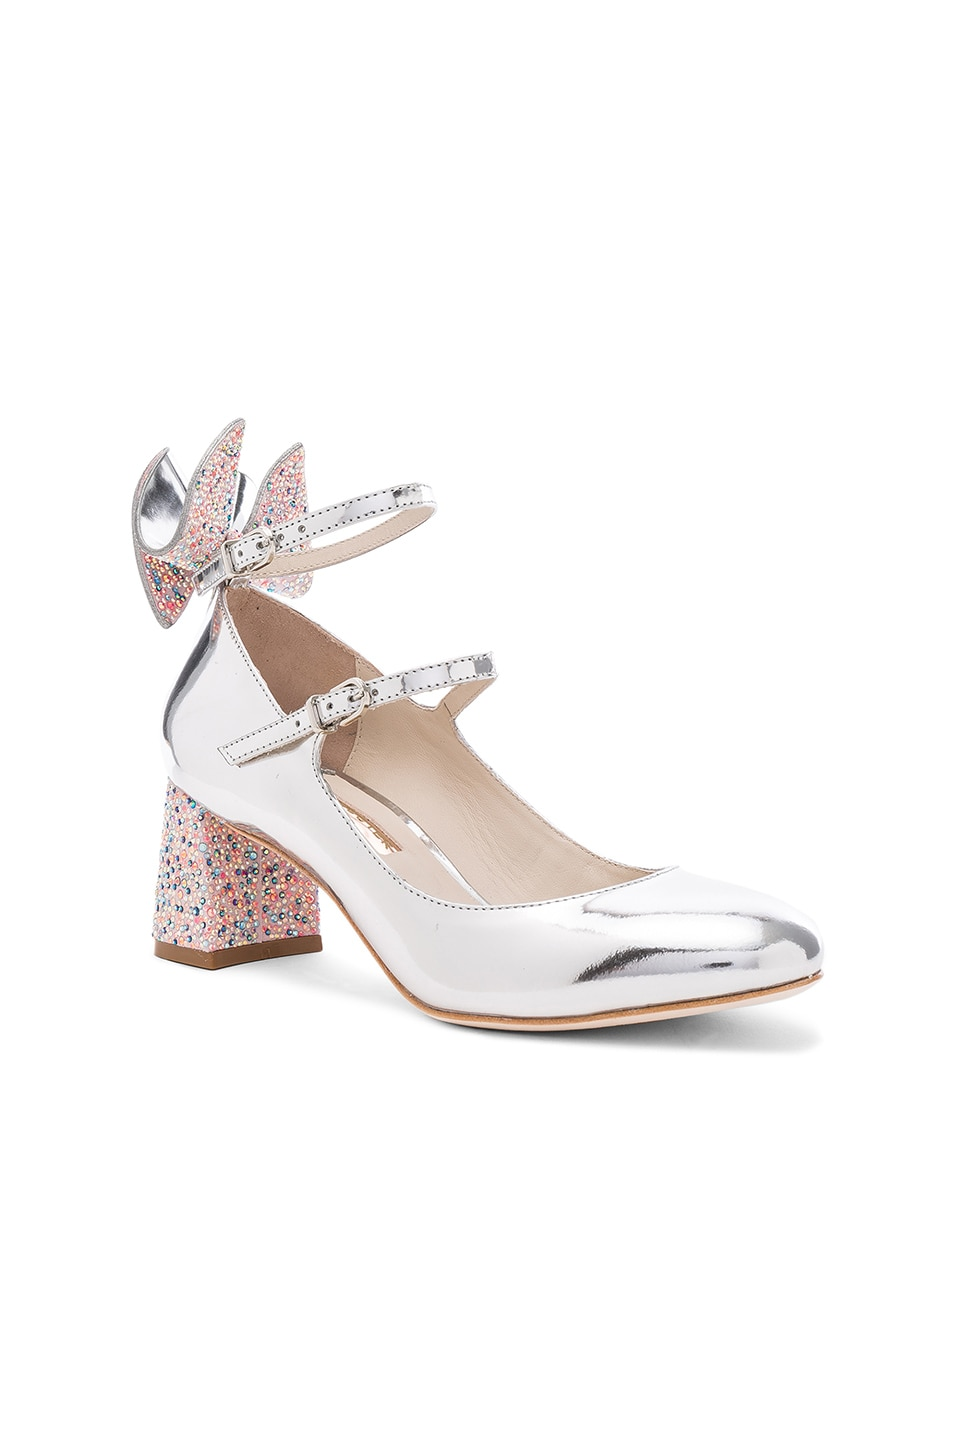 Image 2 of Sophia Webster Leather Lilia Mid Mary Jane Heels in Silver